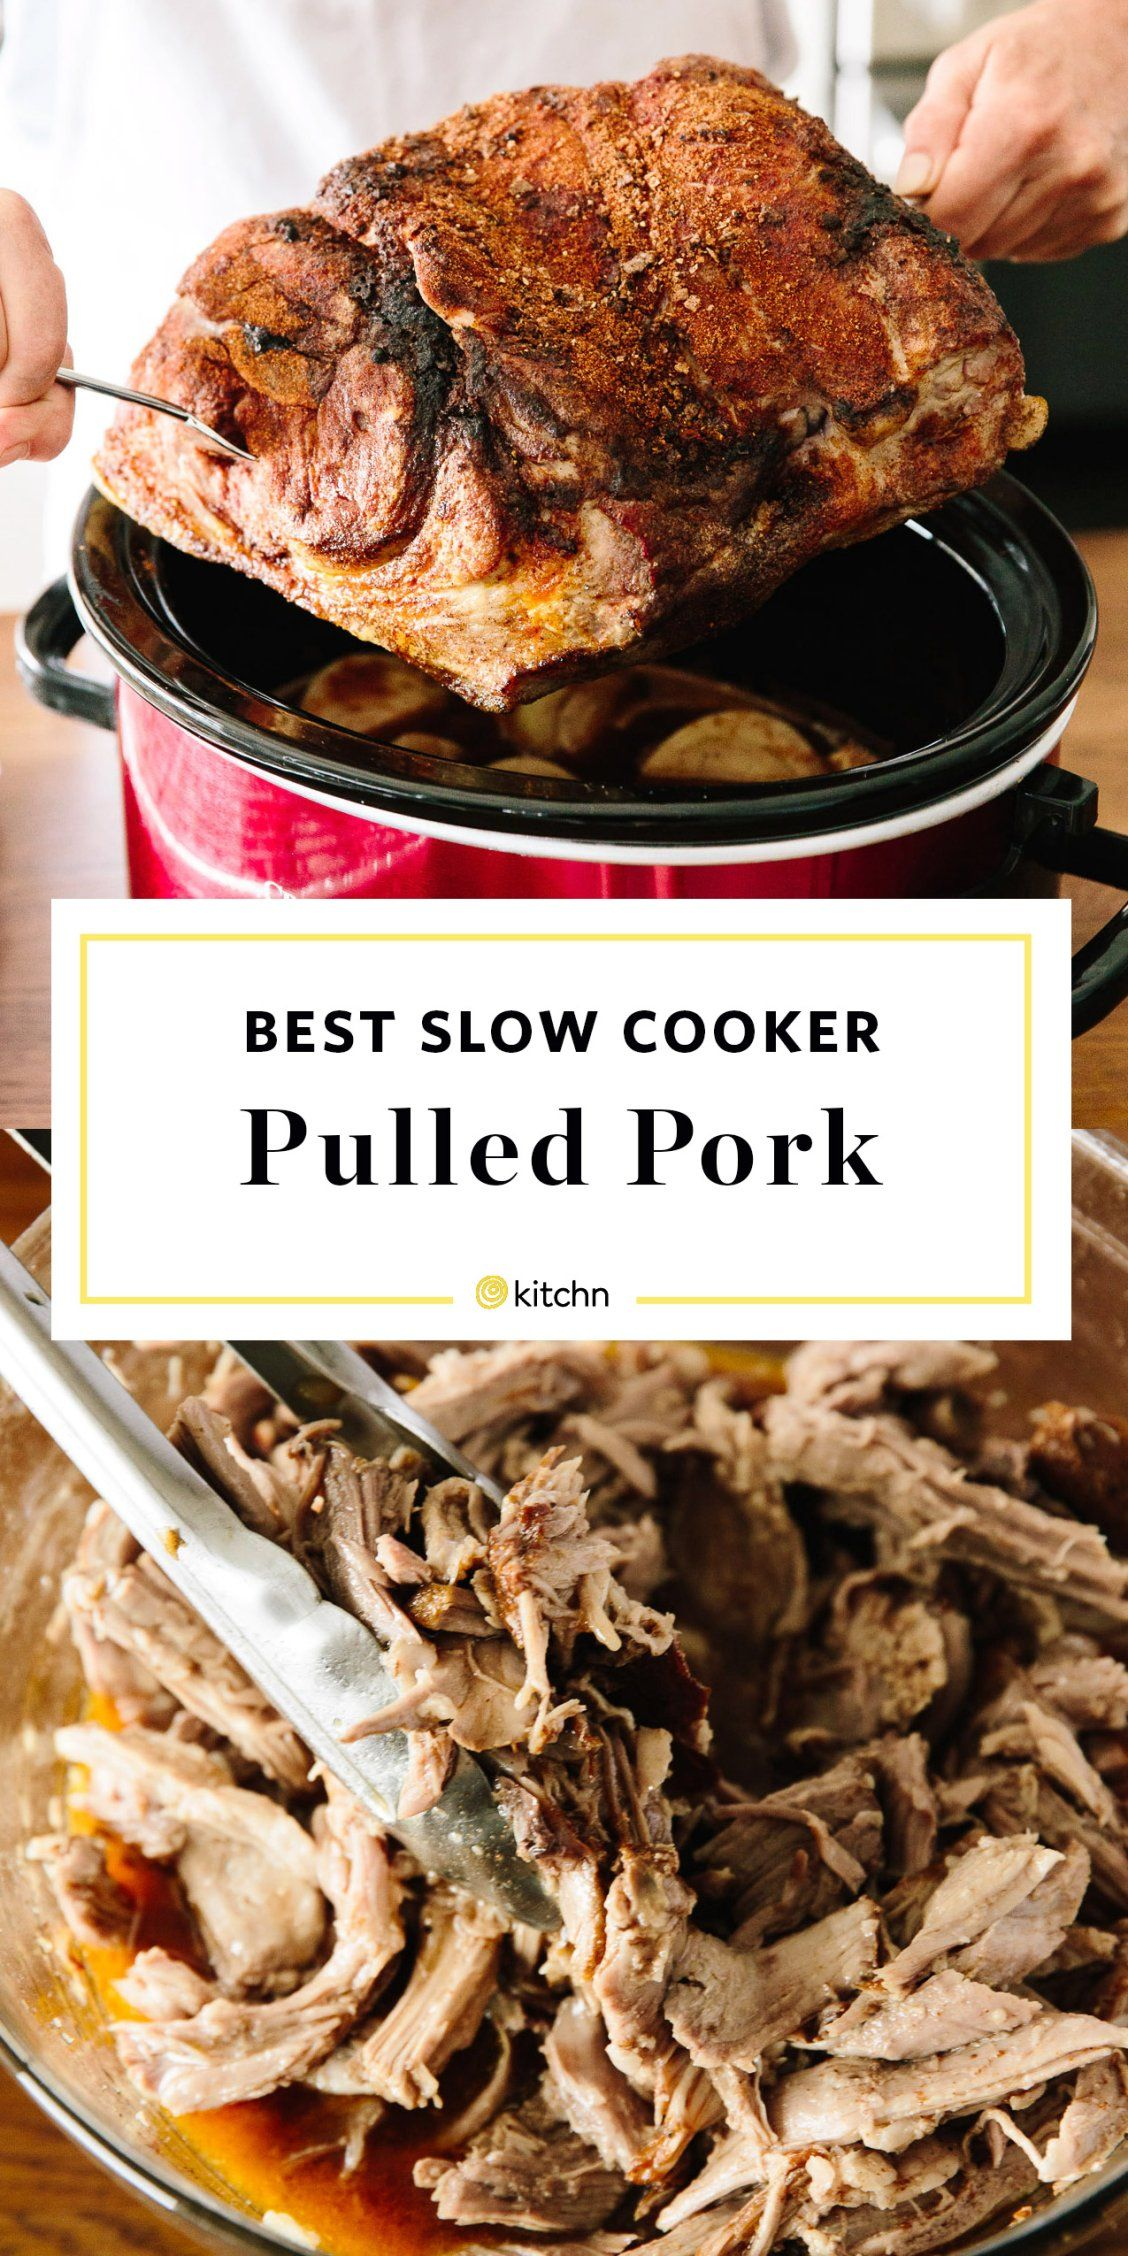 How To Make Pulled Pork In The Slow Cooker Recipe Bbq